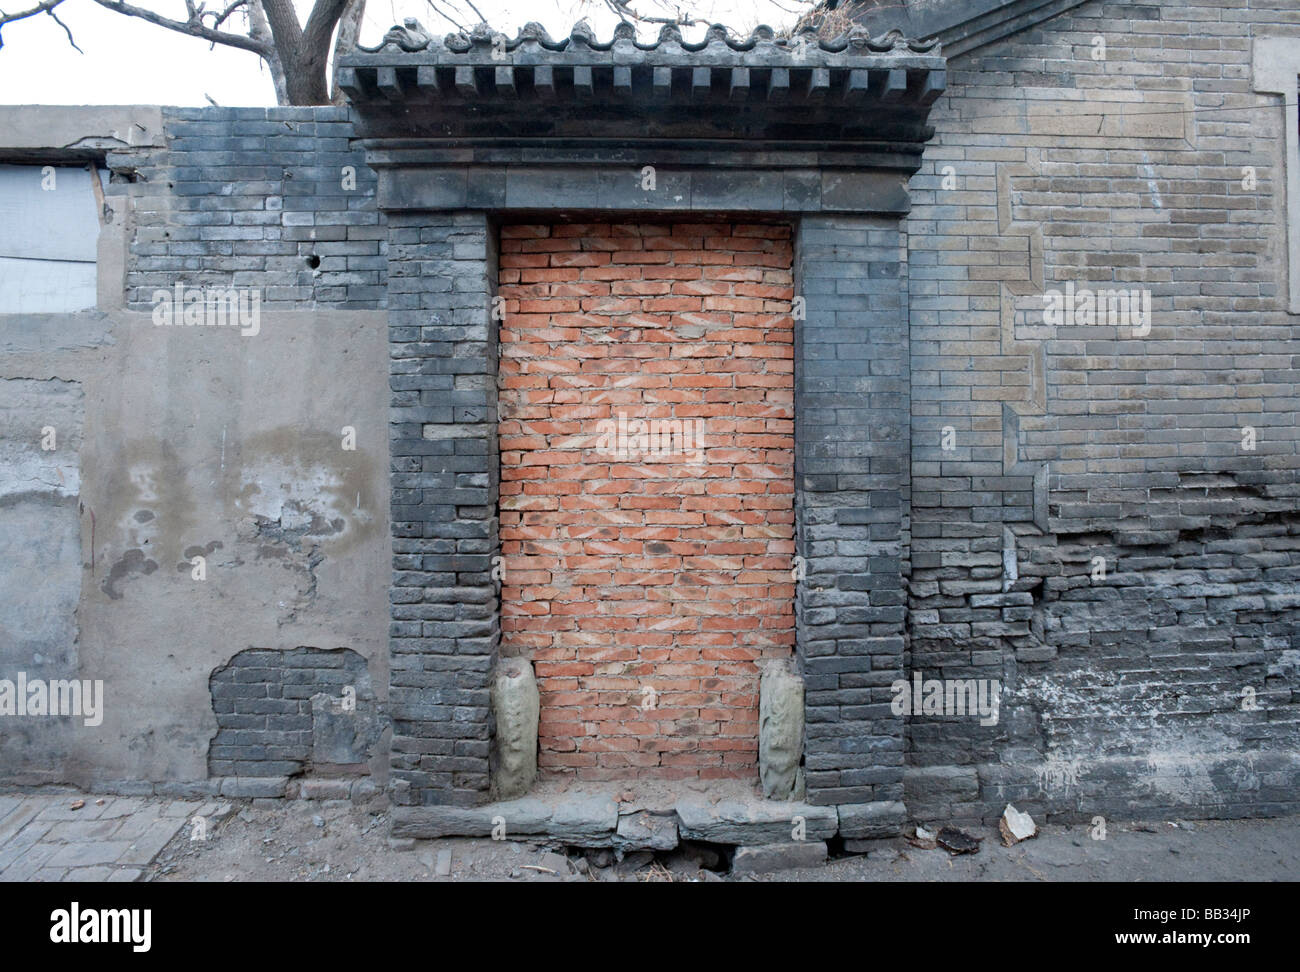 Historic traditional doorway to house in Beijing hutong bricked up prior to demolition in area undergoing redevelopment - Stock Image